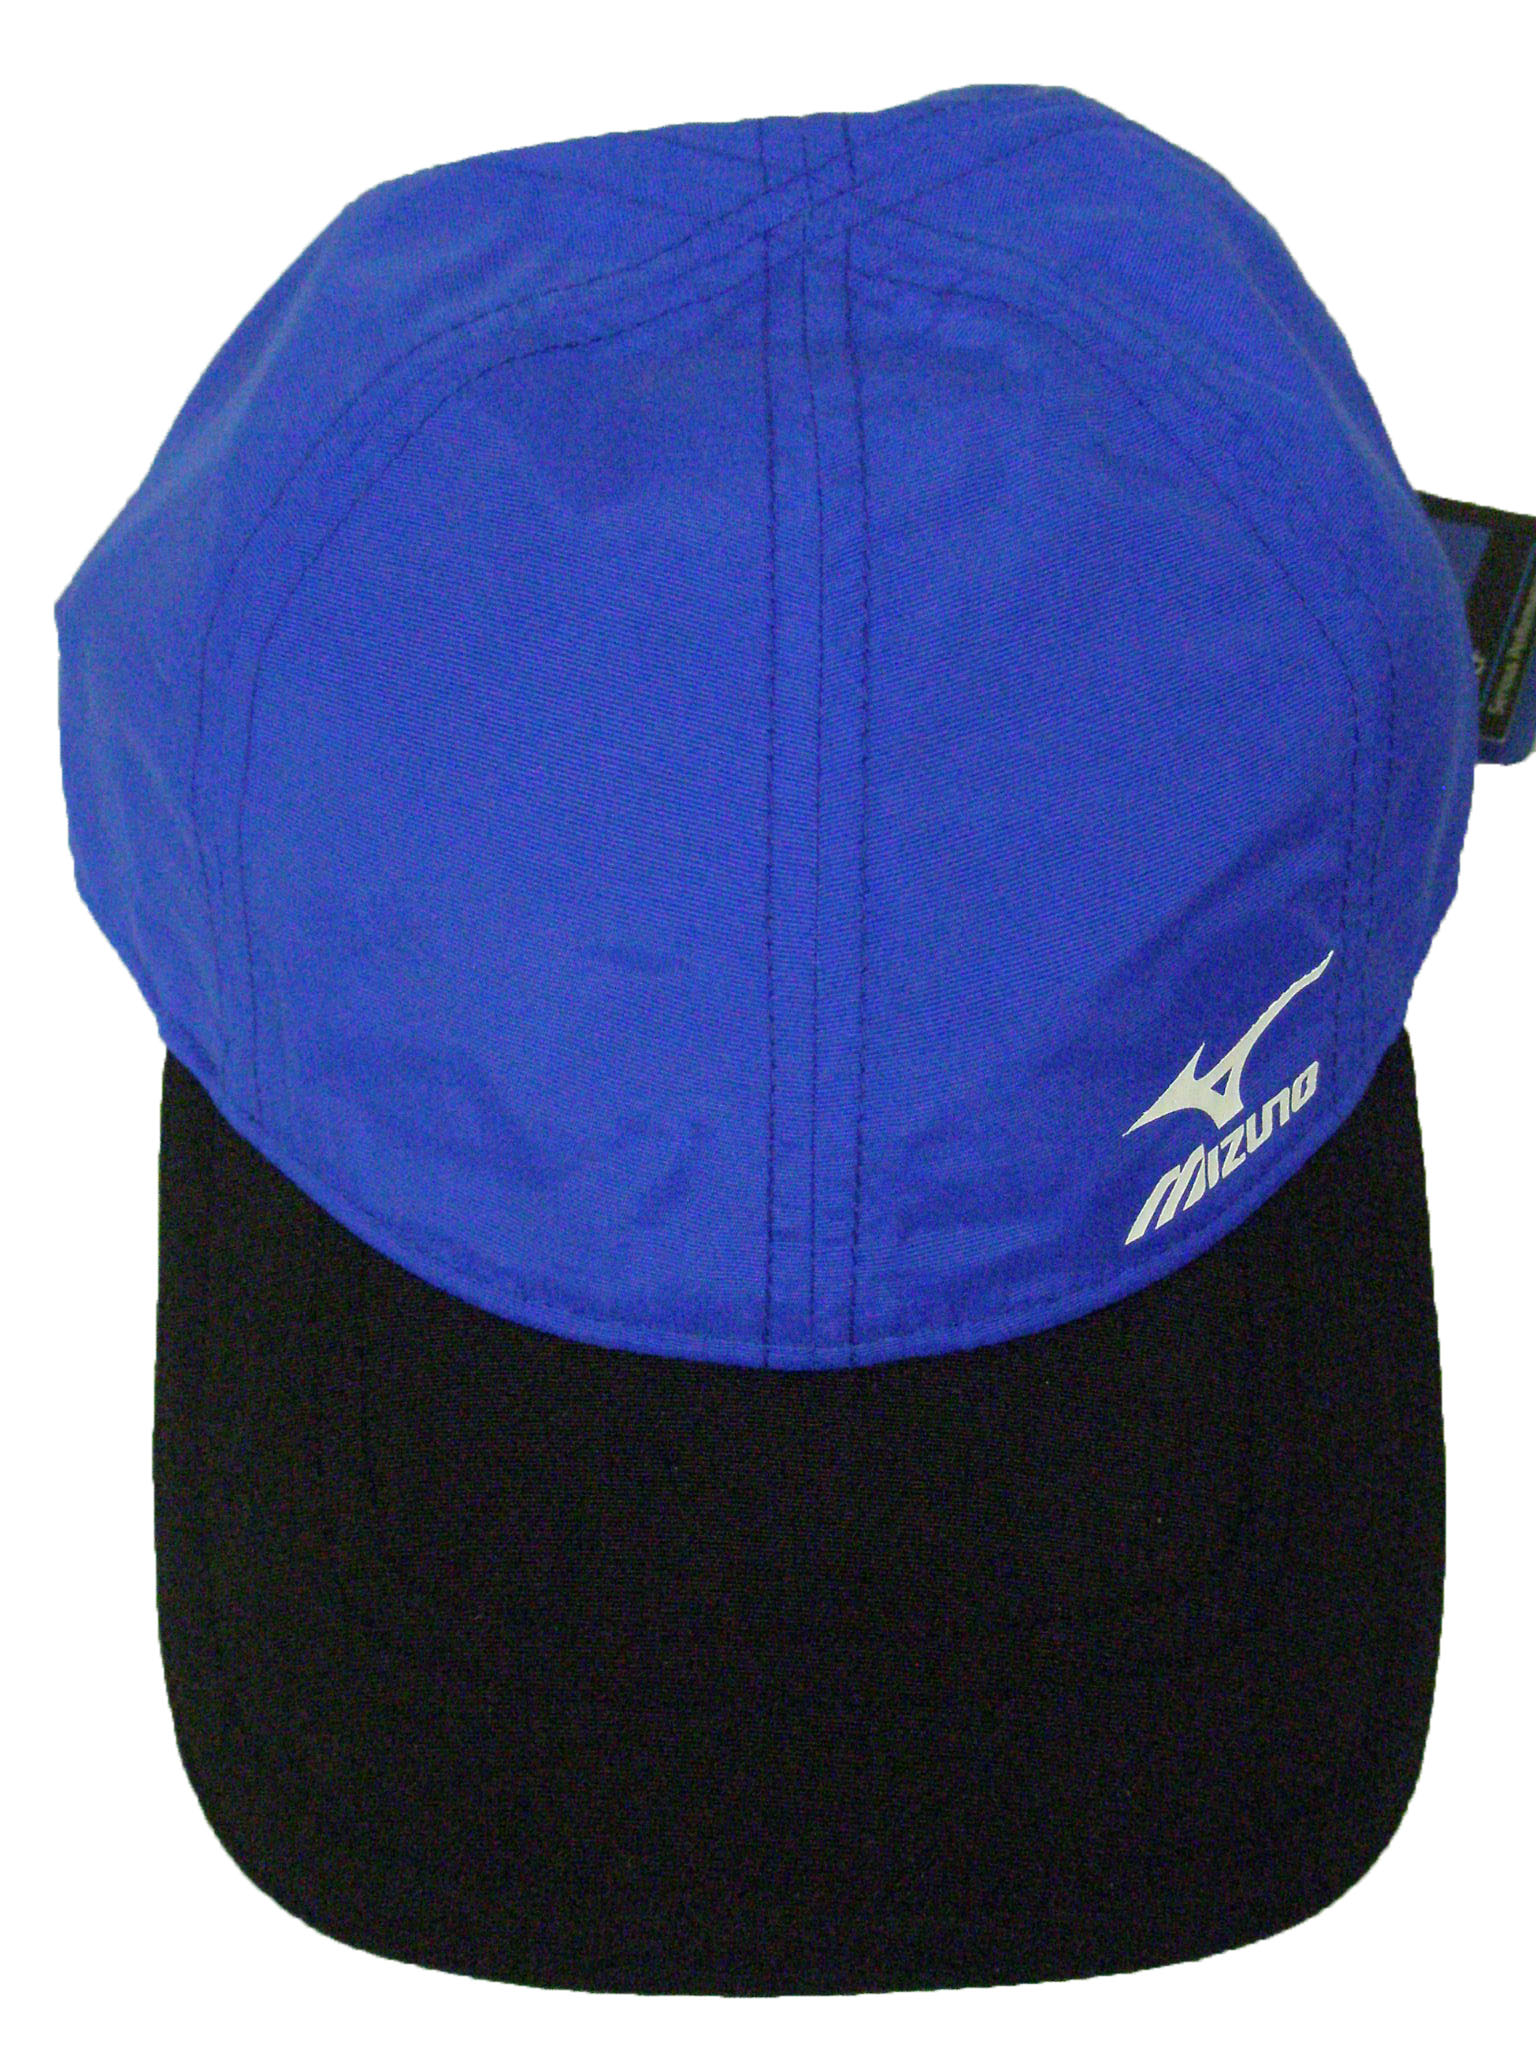 Mizuno Waterproof Cap (One Size) 2012 Golf Rain Hat NEW at Sears.com